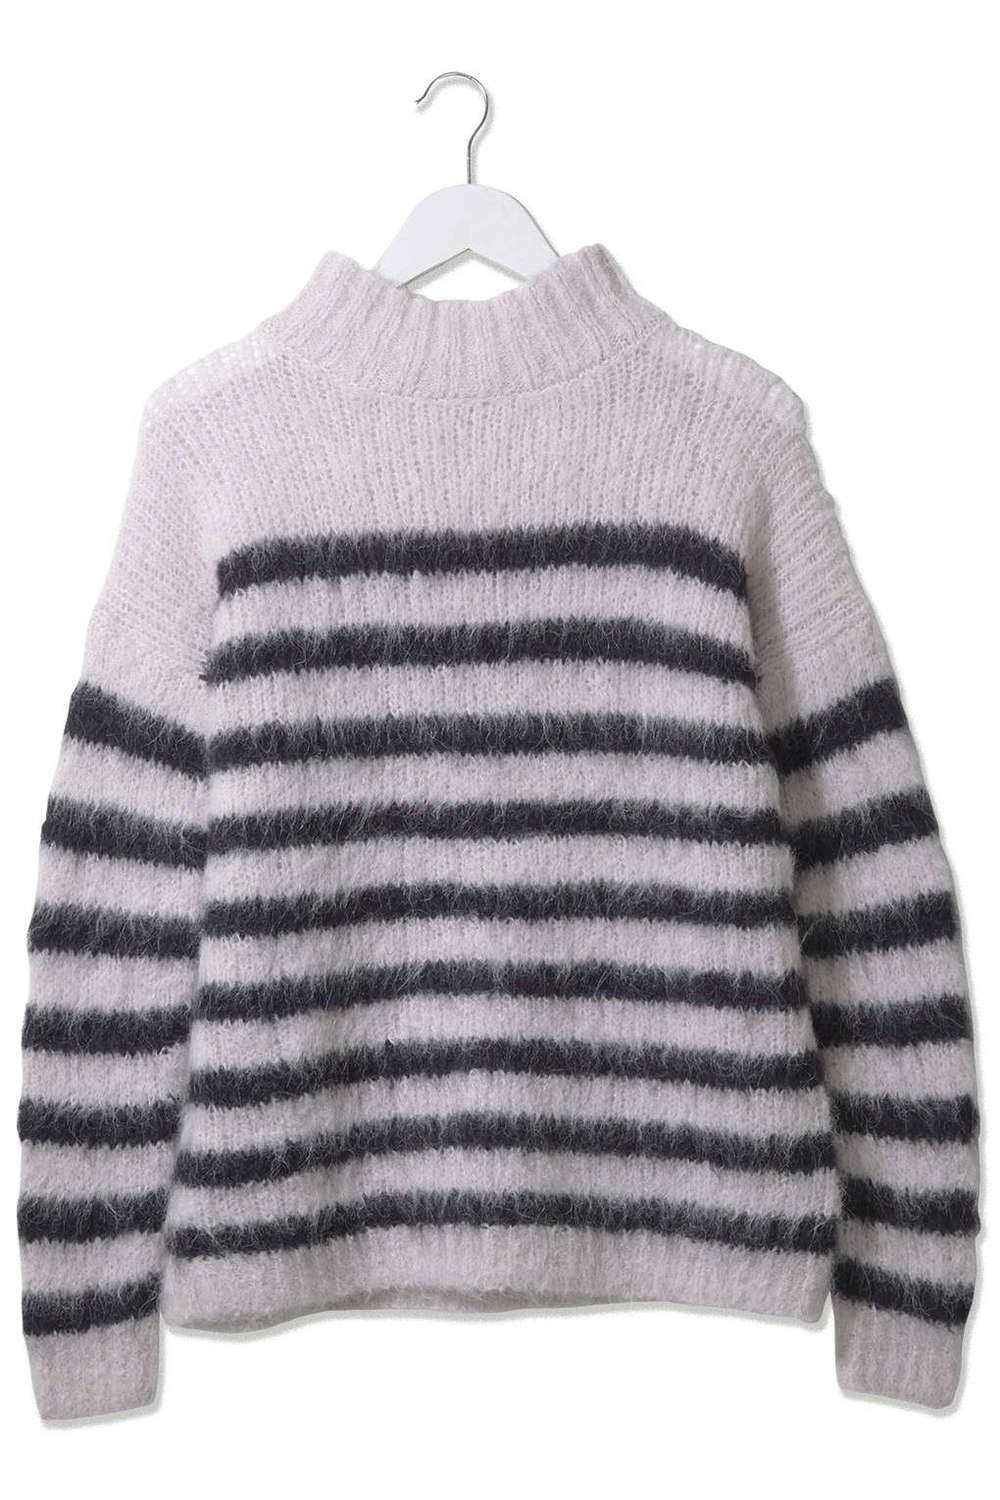 Stripe Knit Jumper by Boutique